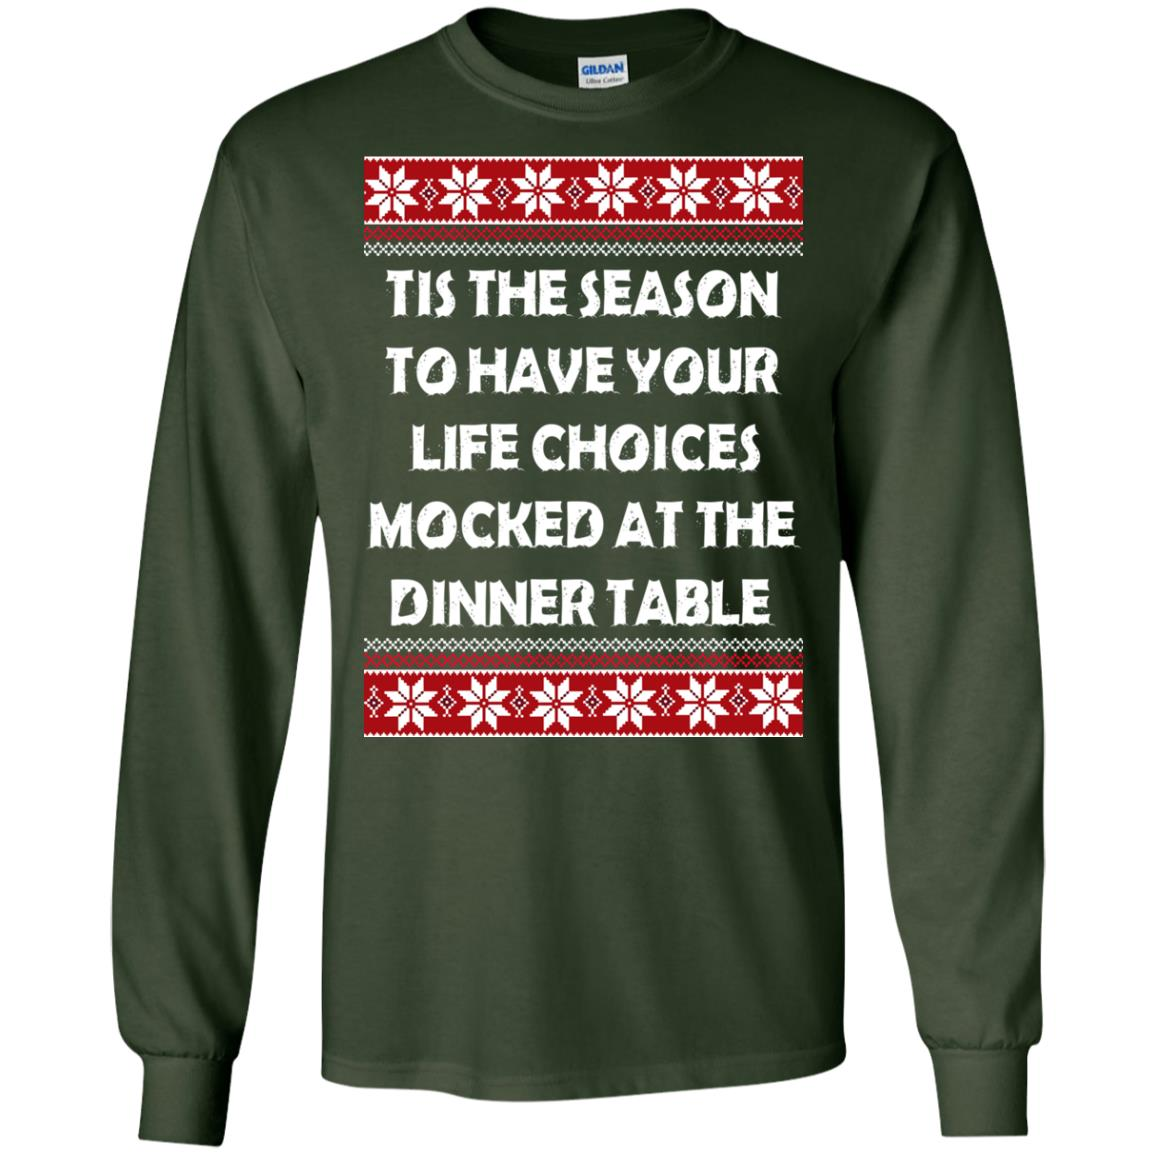 image 5891 - Tis The Season To Have Your Life Choices Mocked Christmas Sweater, Hoodie